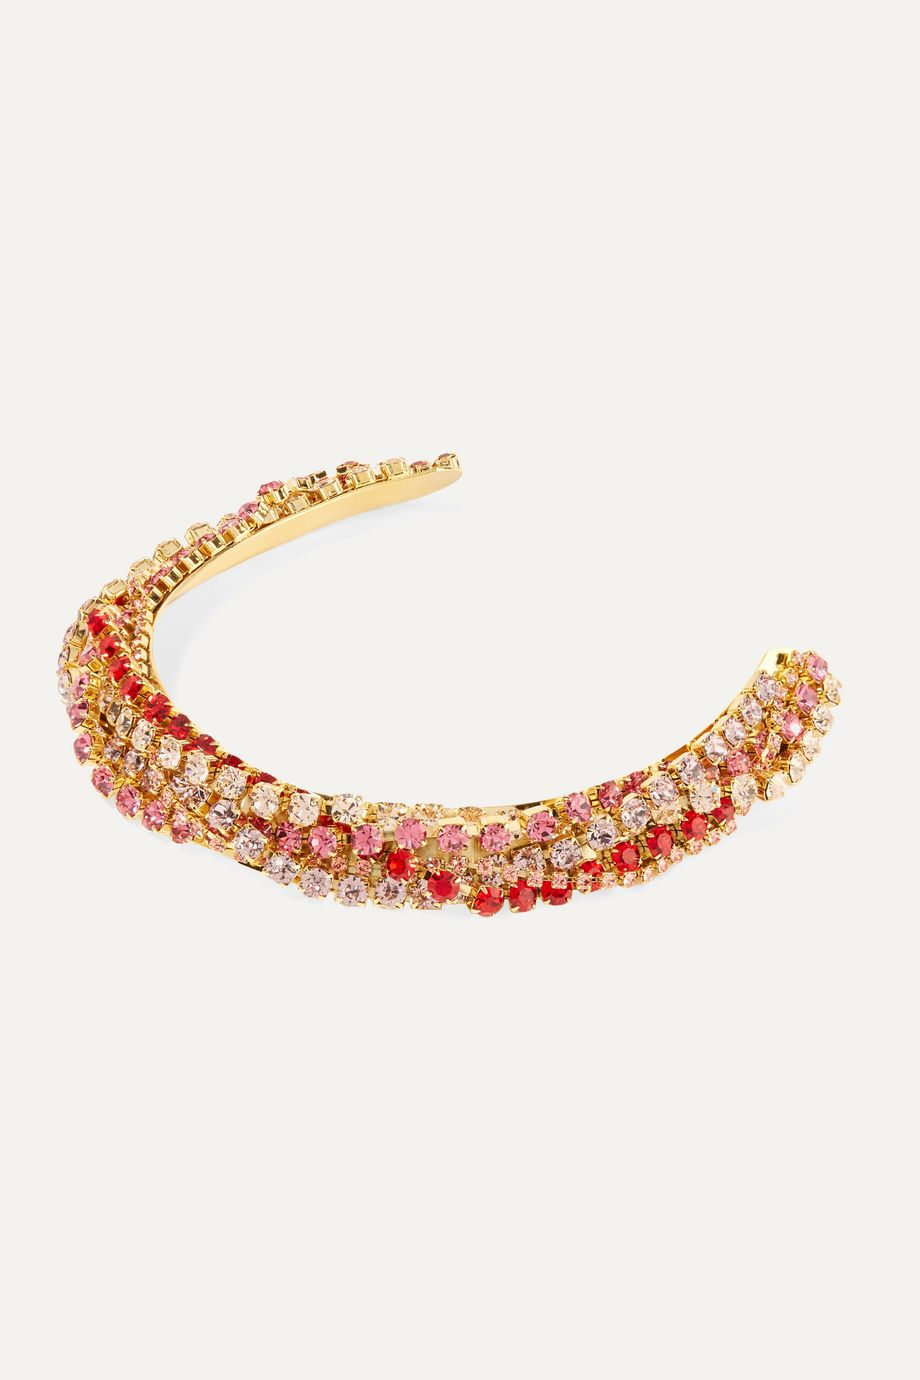 LELET NY Gold-plated crystal headband